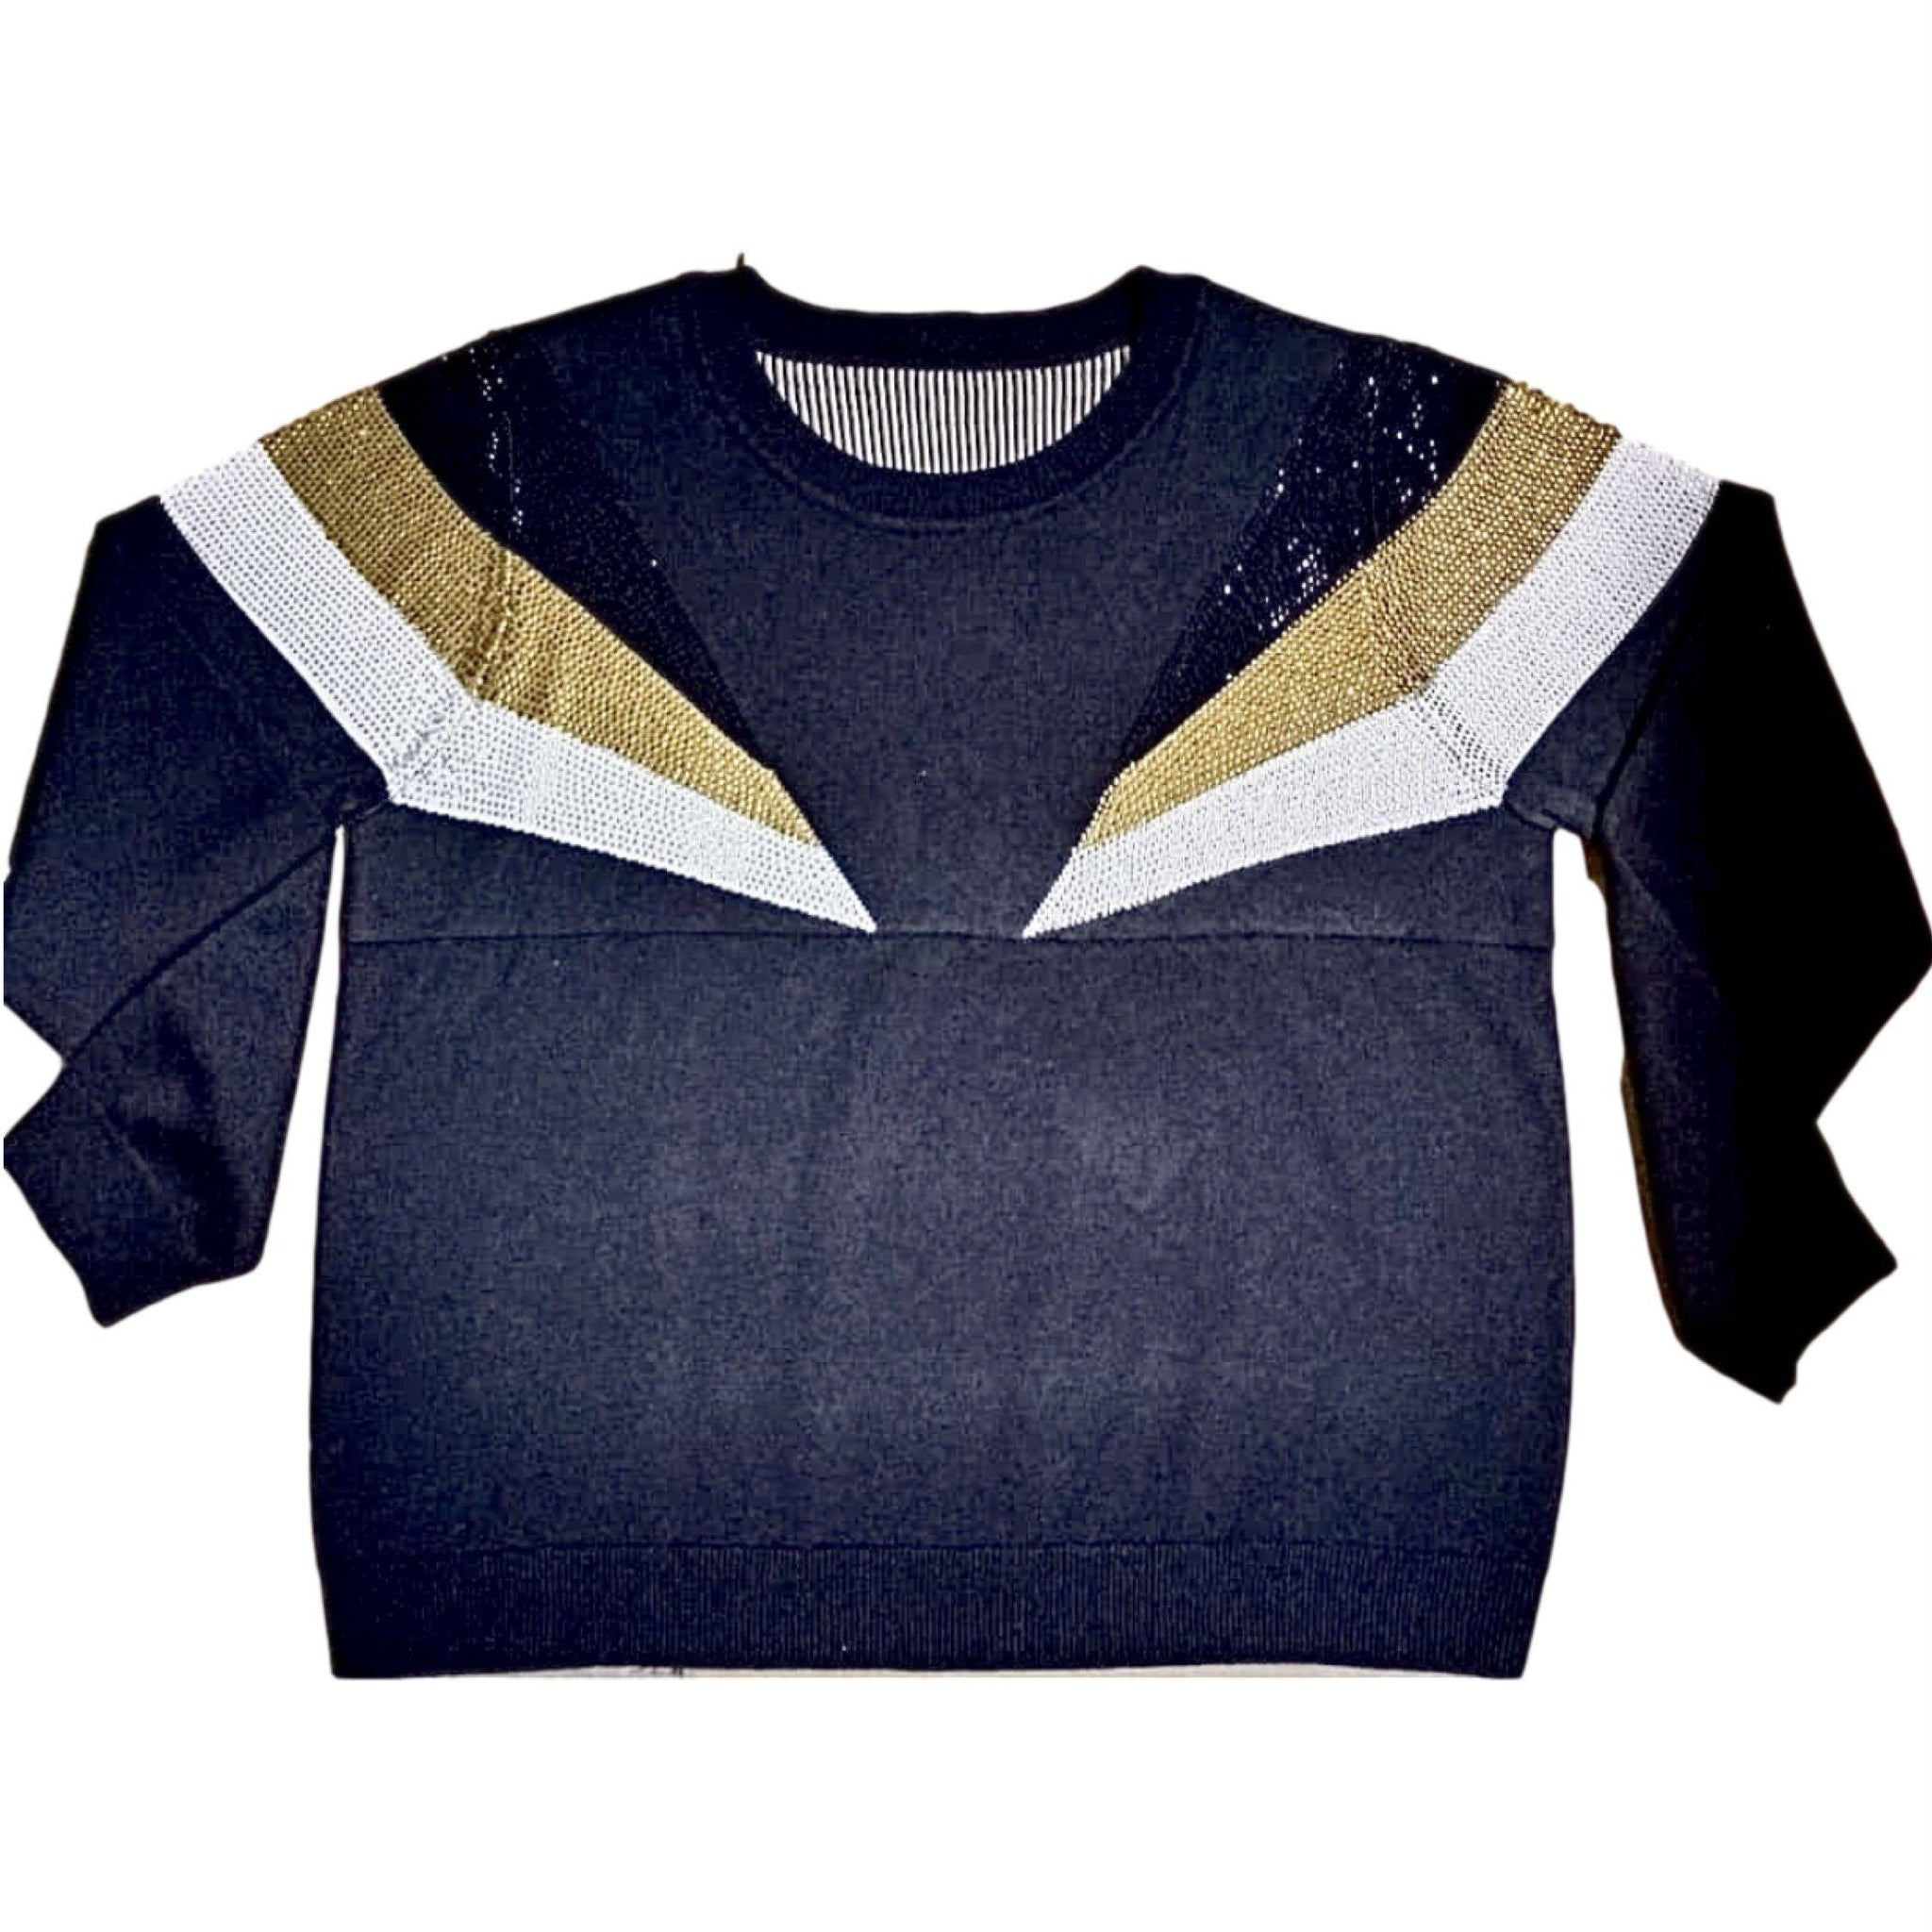 Black and Gold Shoulder Stripes Sweater